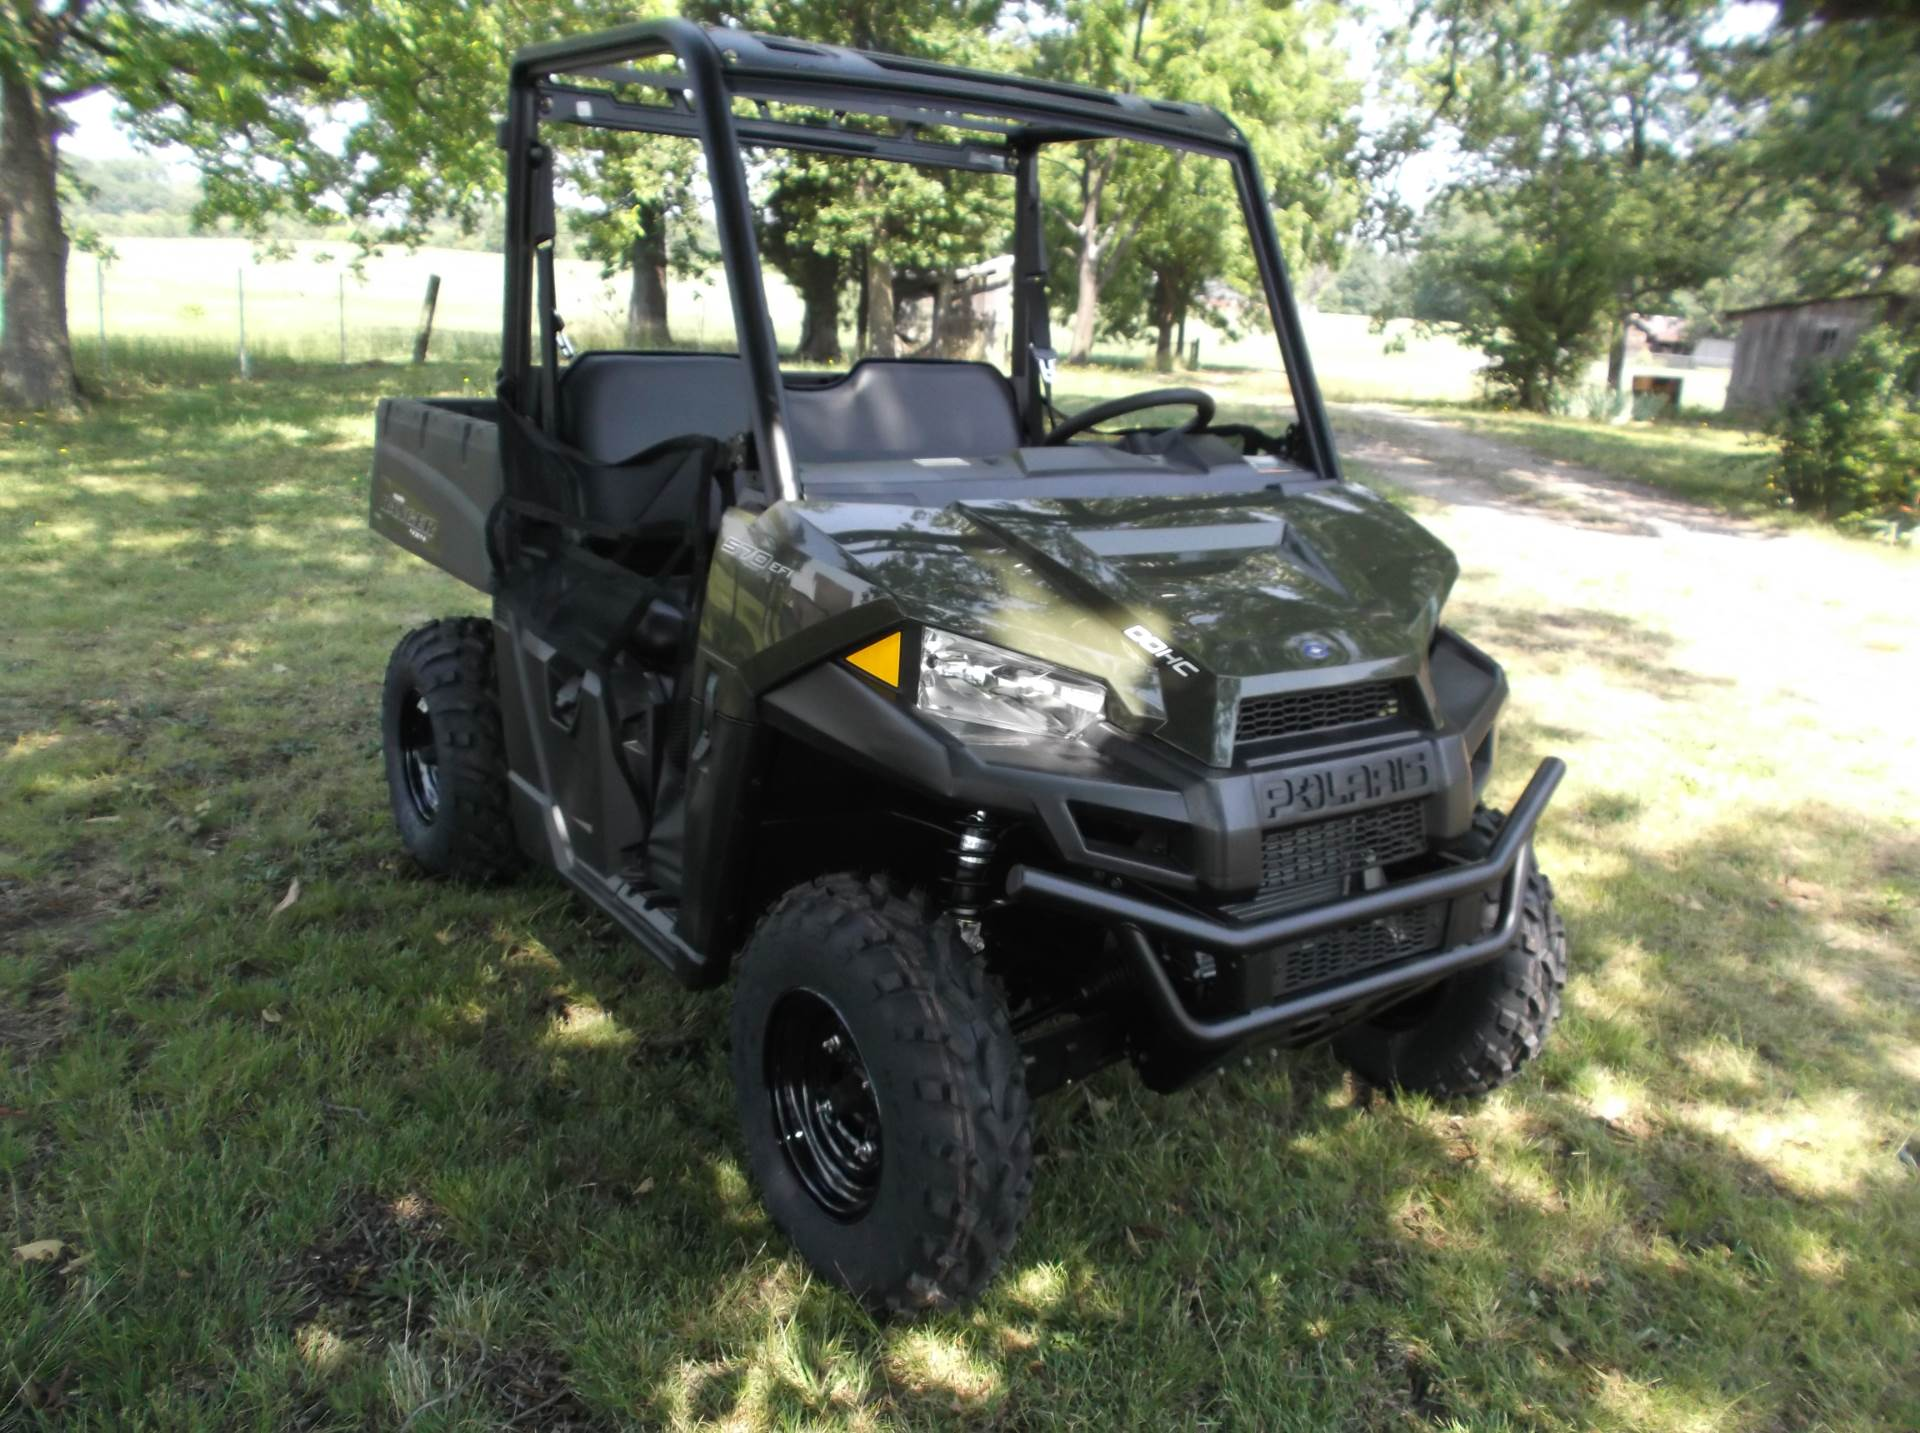 2019 Polaris Ranger 570 for sale 5883